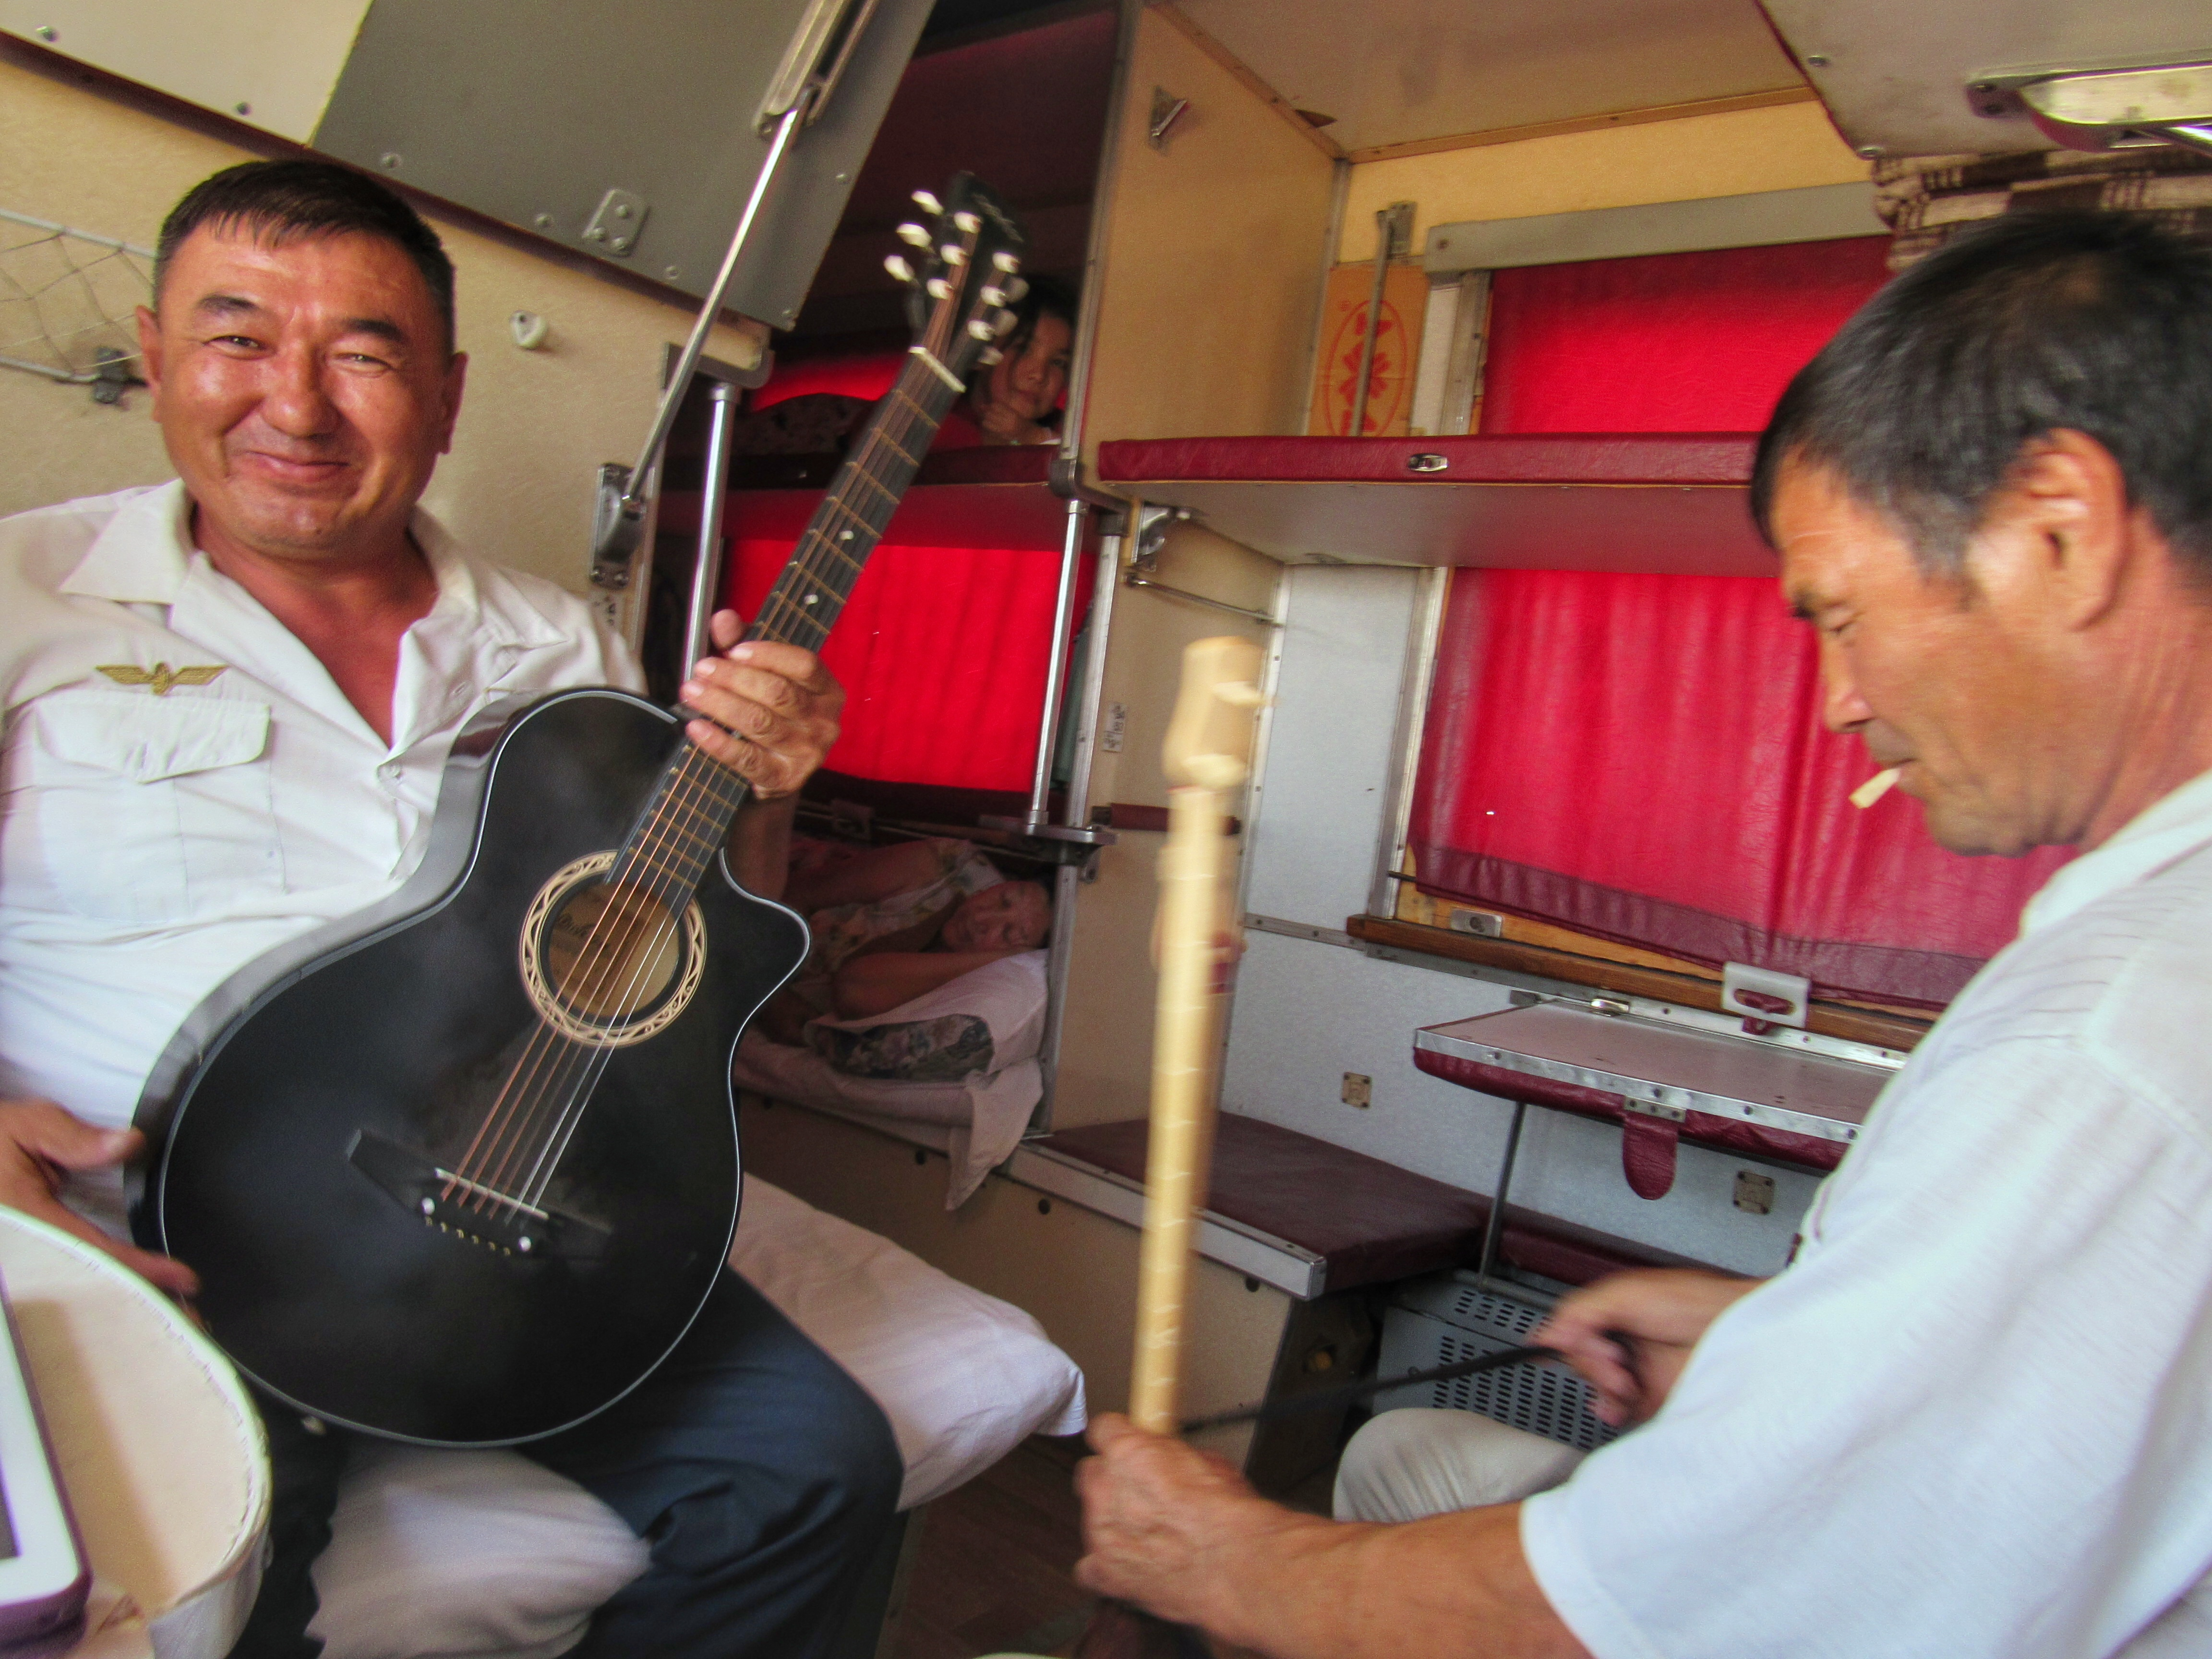 Train conductor and instrument maker